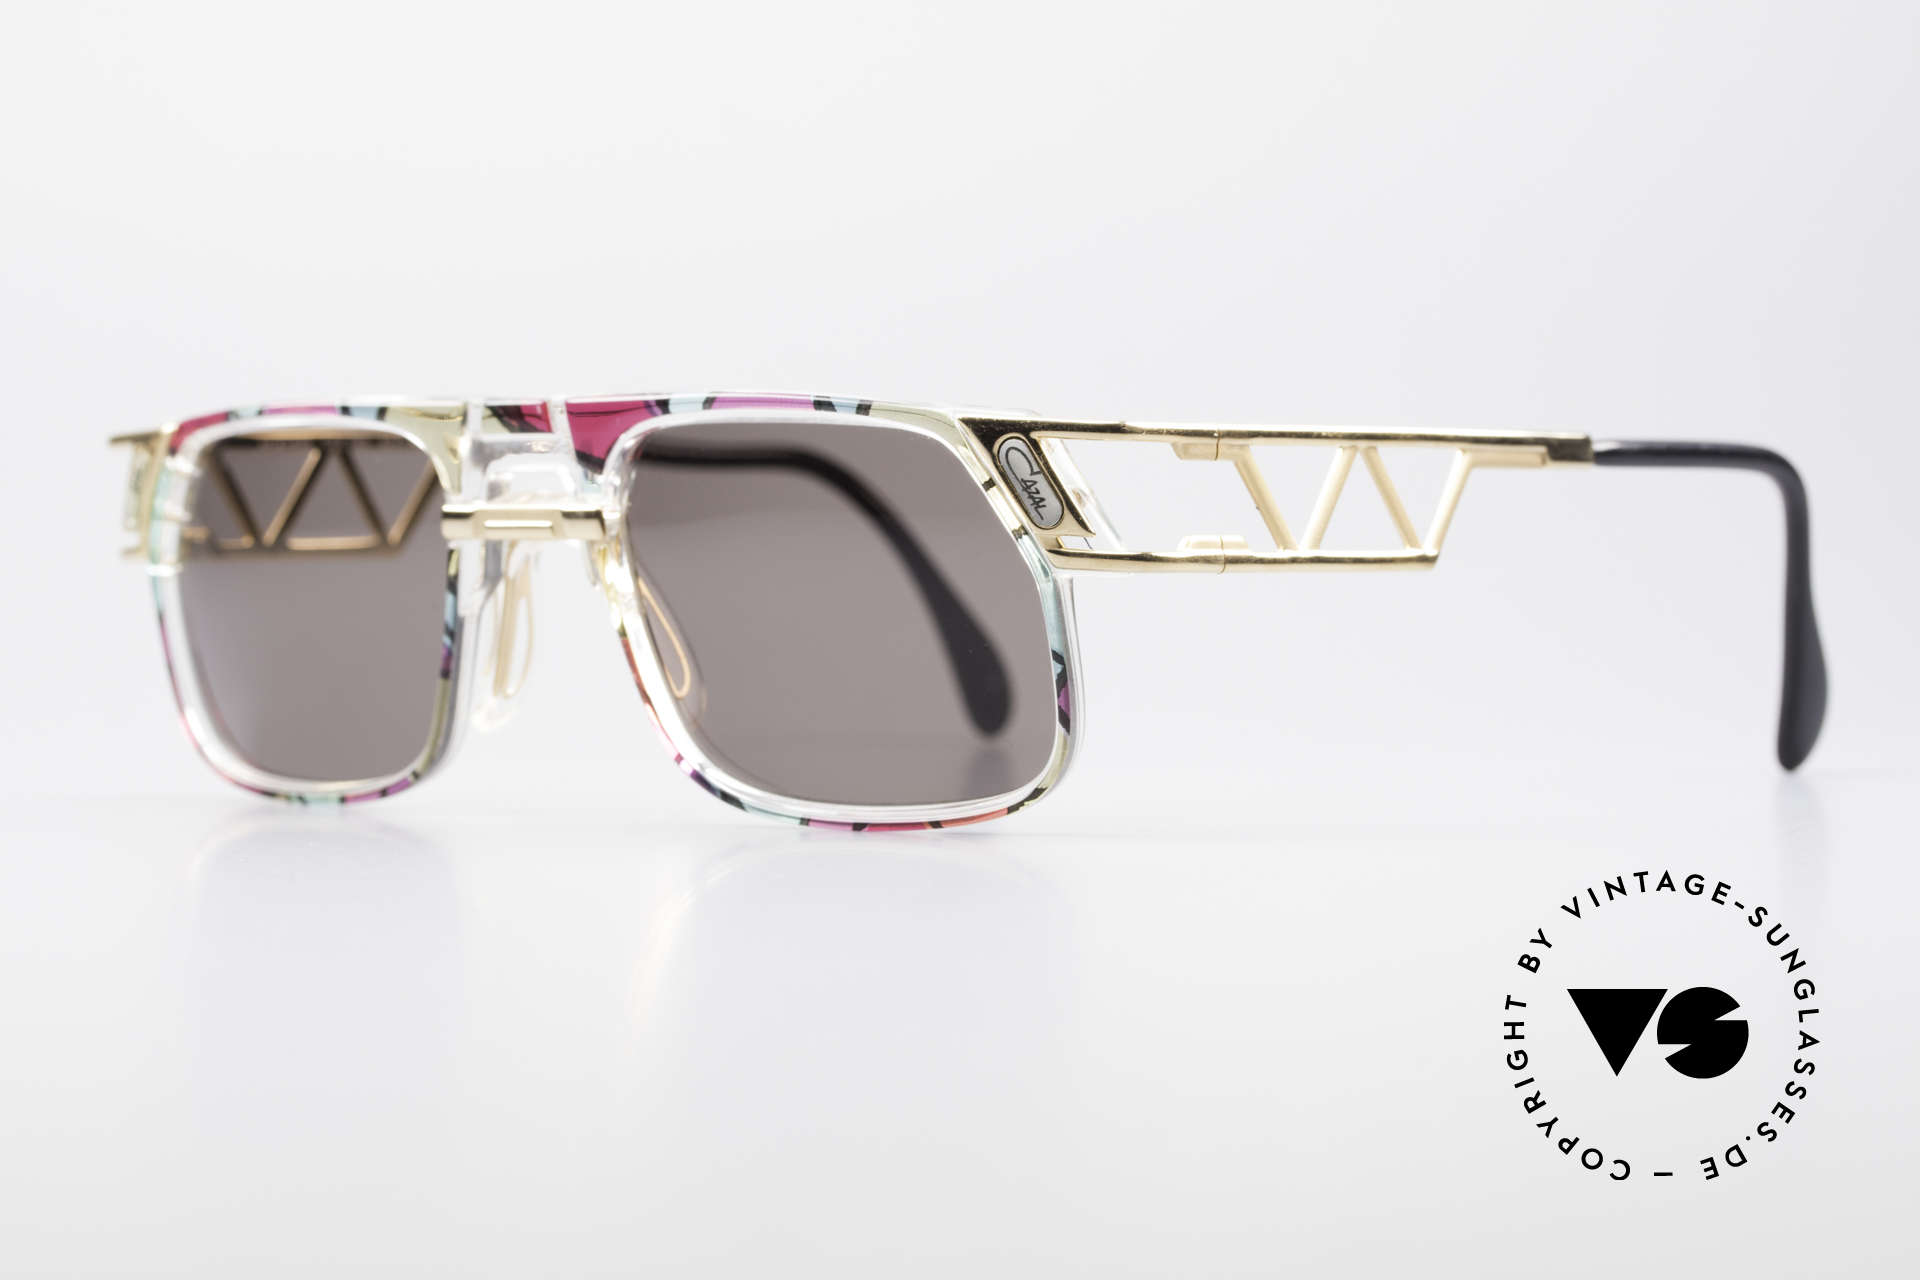 Cazal 876 True 90's No Retro Sunglasses, unique frame construction & multifaceted frame coloring, Made for Men and Women